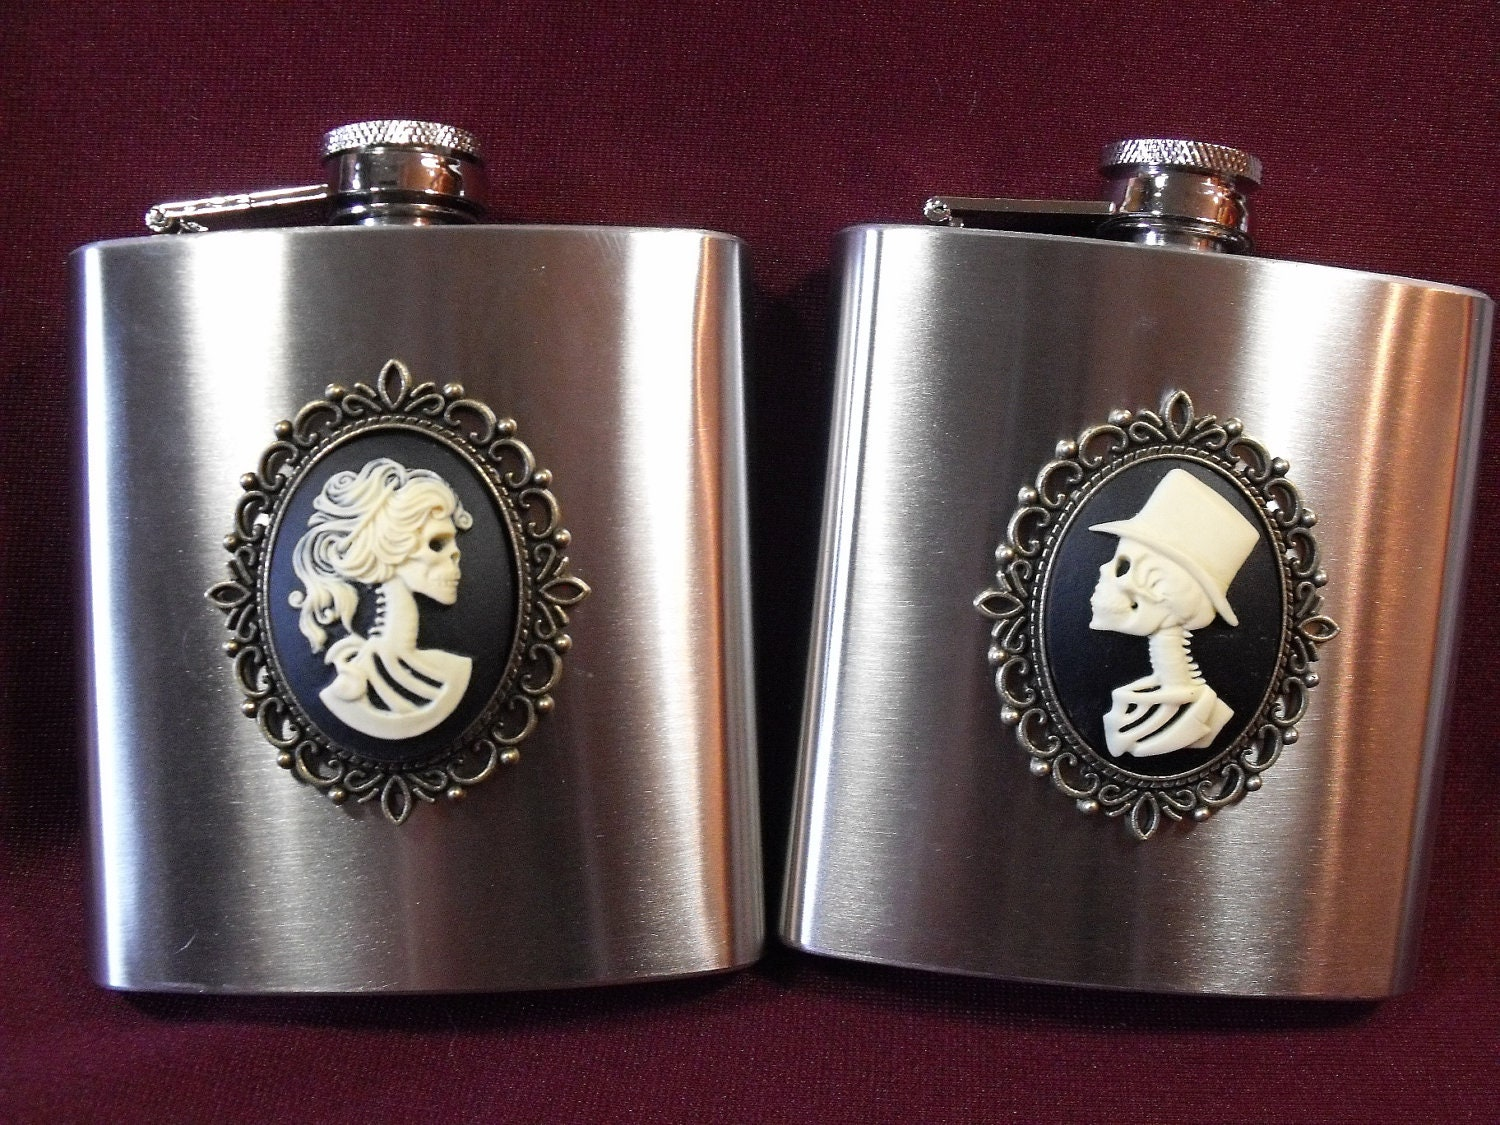 Wedding Gifts For Bride And Groom Who Have Everything : Request a custom order and have something made just for you.